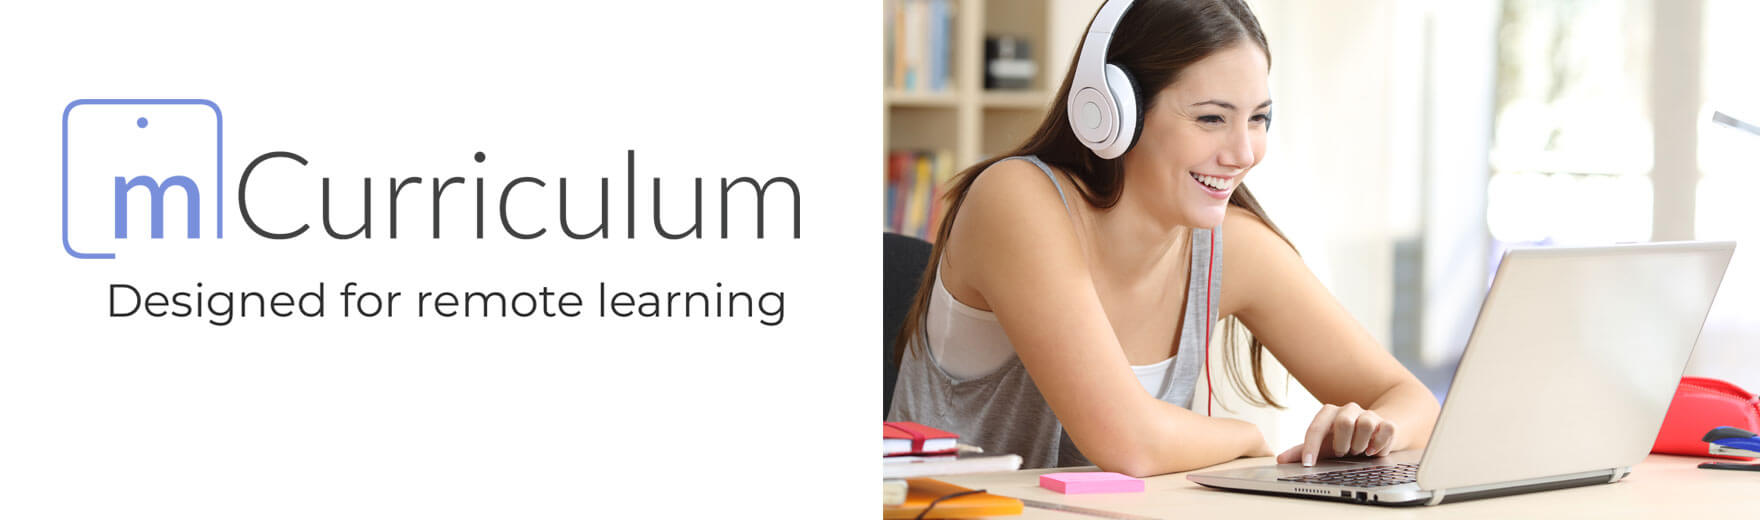 mCurriculum logo and tagline 'designed for remote learning'